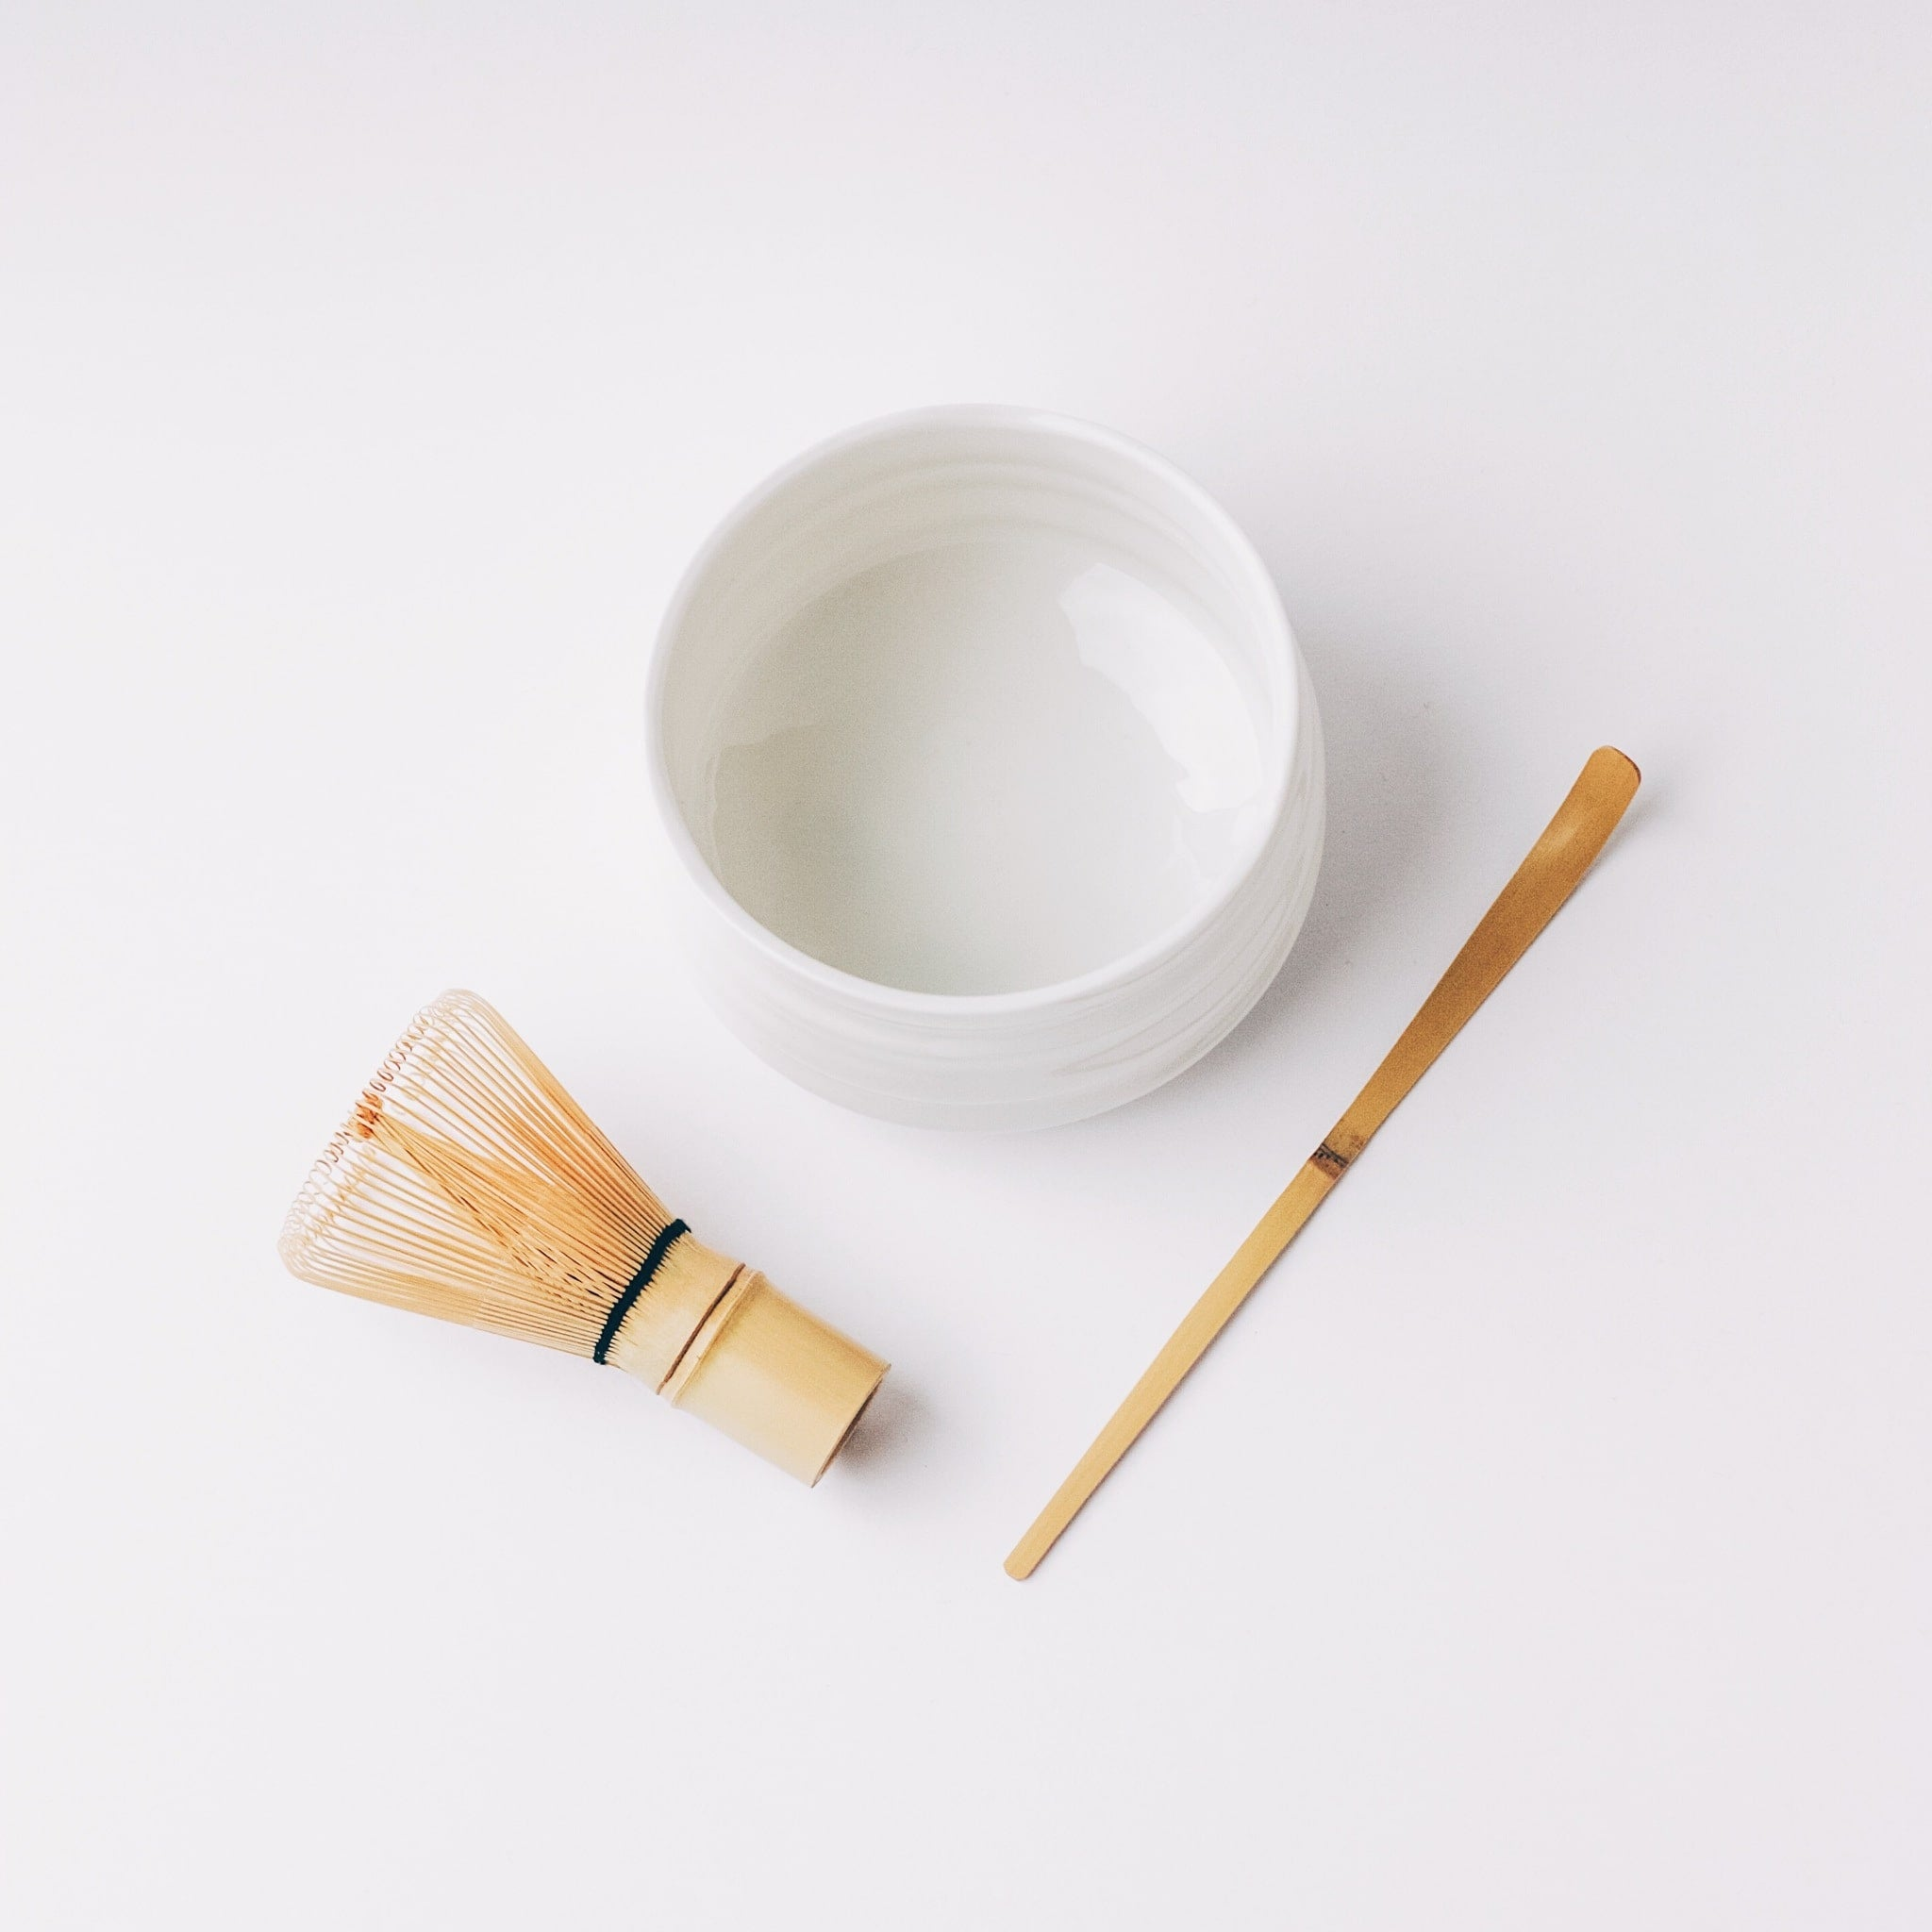 Top view of Chawan (matcha bowl), Chasen (matcha whisk) and Chashaku (matcha scoop) included in The Kit